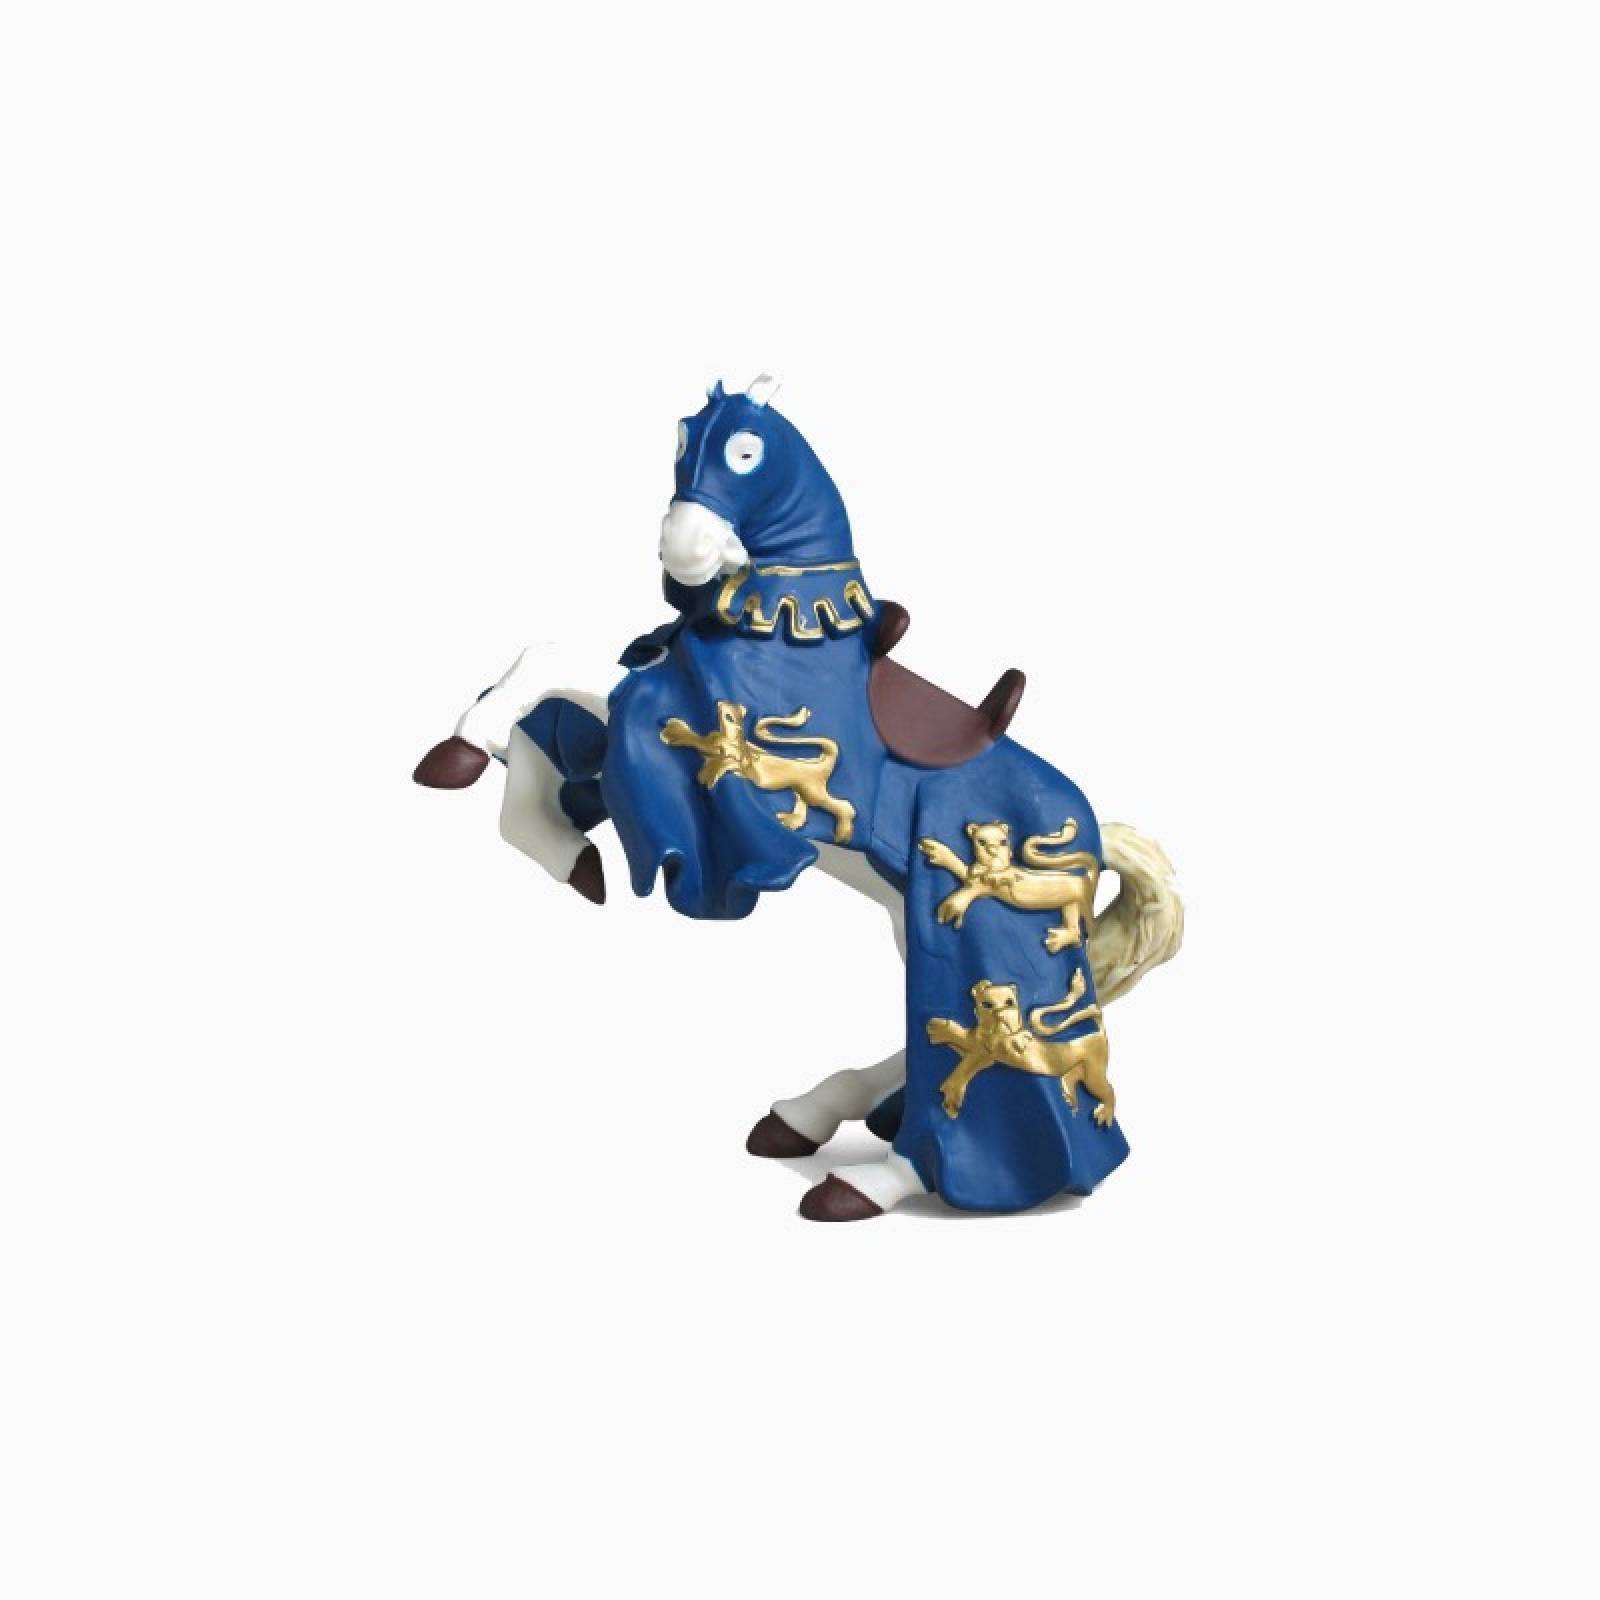 Blue King Richard Horse - Papo Fantasy Figure